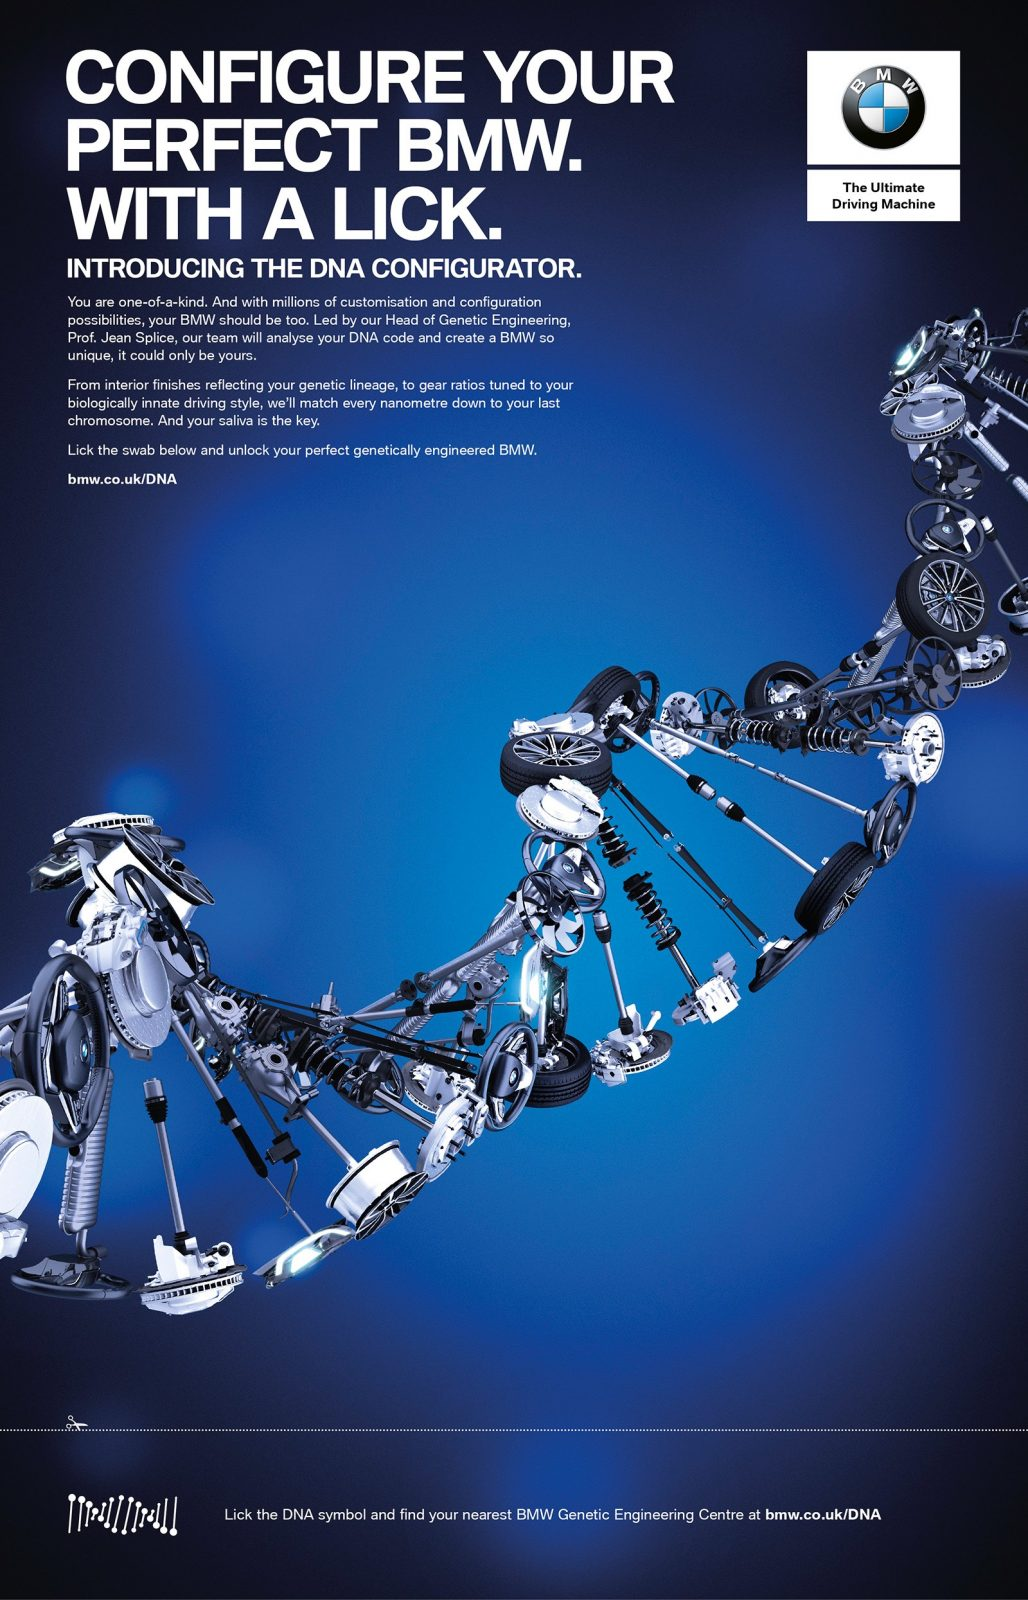 Bmw launches world first dna configurator which genetically bmw dna configurator april fools day ads malvernweather Gallery